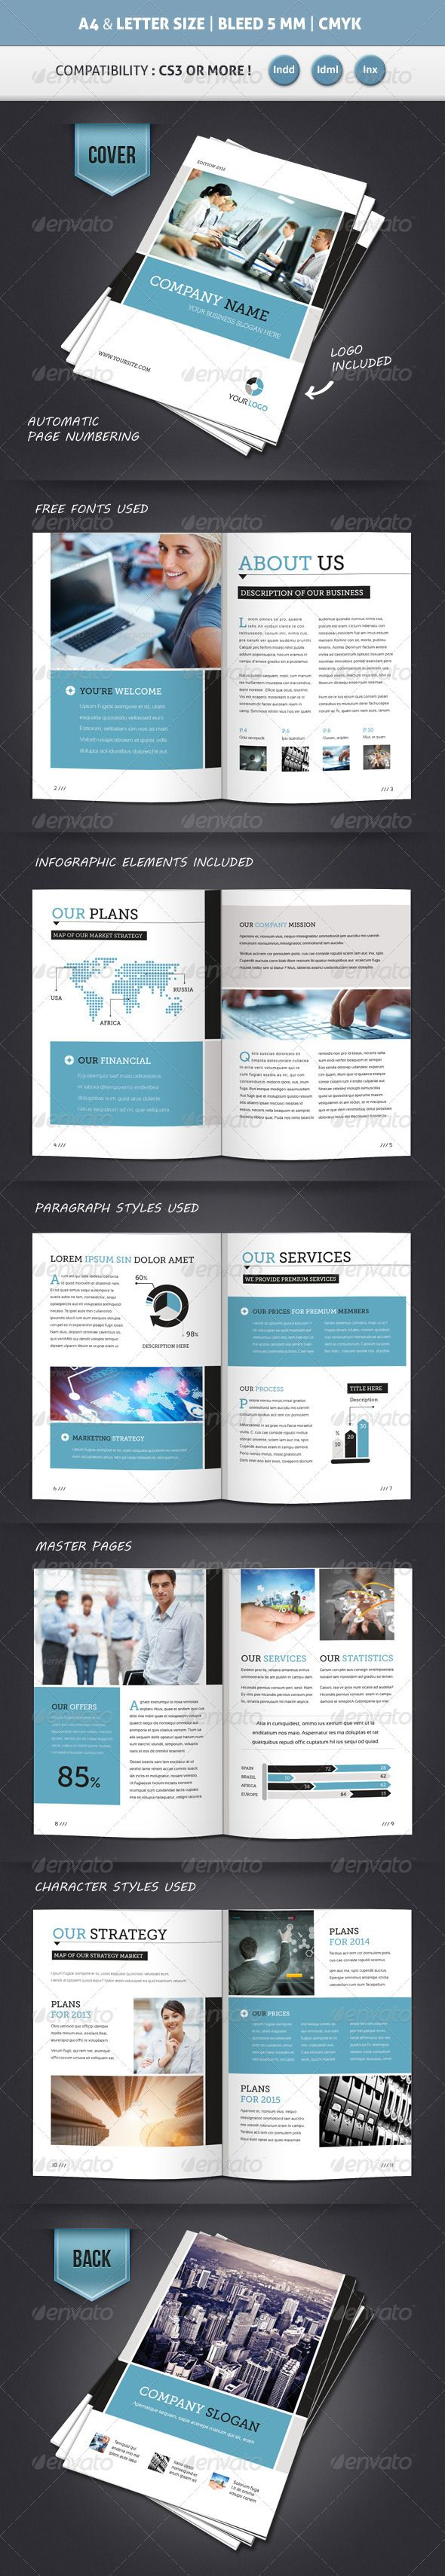 Corporate Brochure Template A4 & Letter 12 Pages Regarding 12 Page Brochure Template